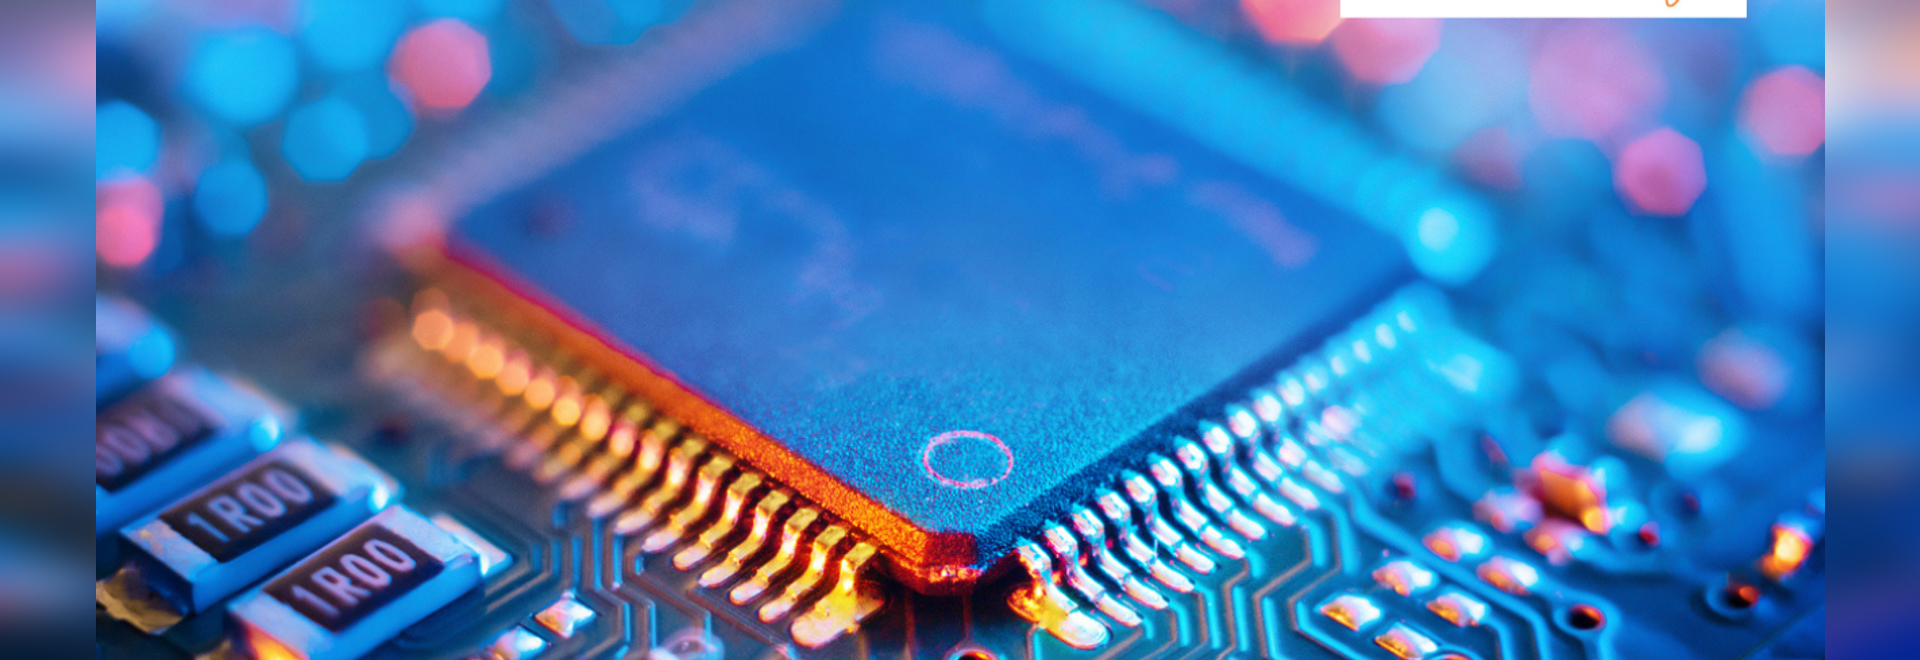 September 15 marks the end of a transitory period, after which Washington will exert control over the sale of any electronic component containing US technology to China's telecom equipment champion...